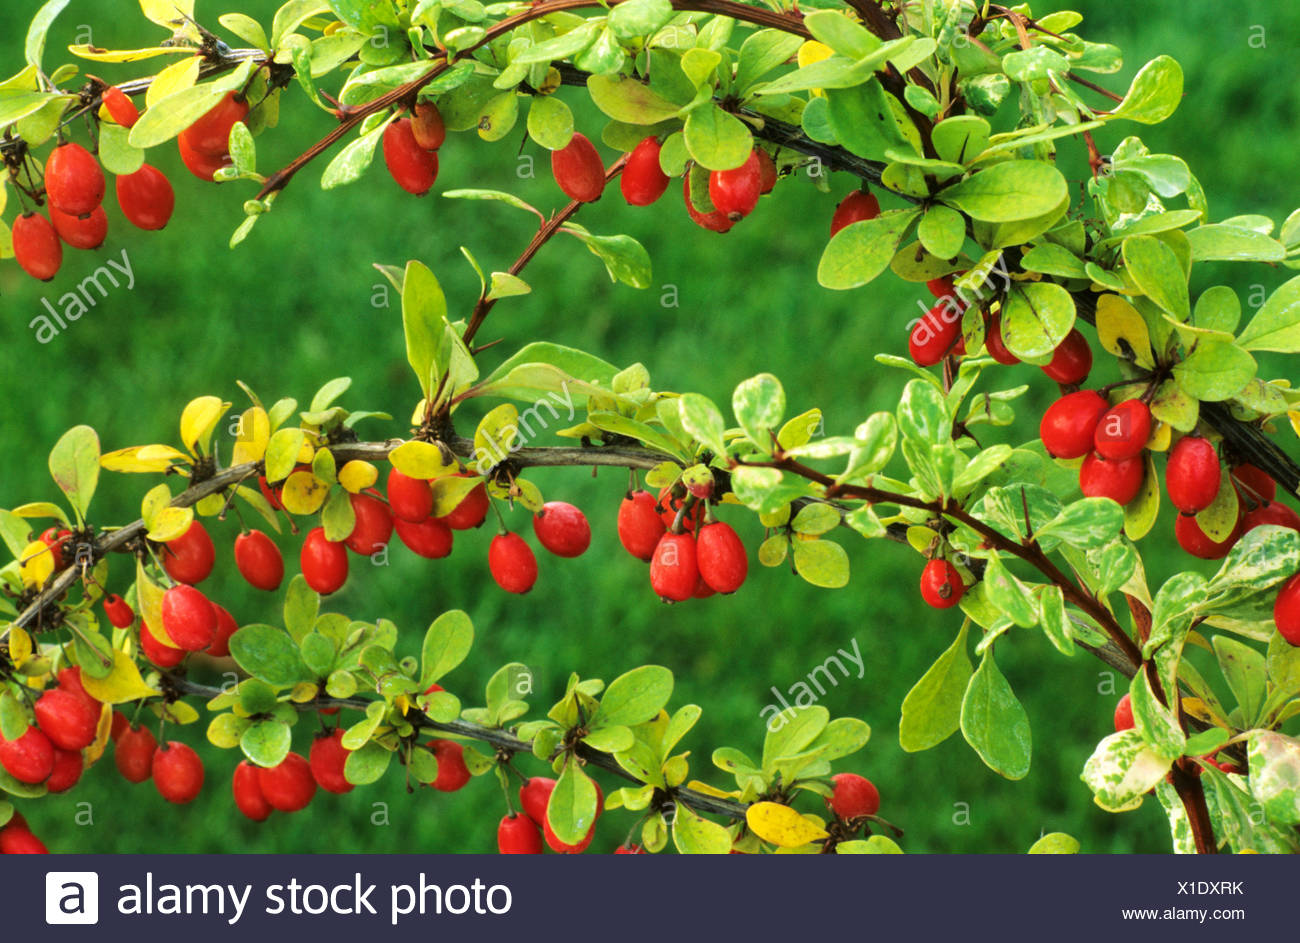 Berberis thunbergii 'Baum' barberry red berry berries fruit fruits garden plant plants barberries - Stock Image